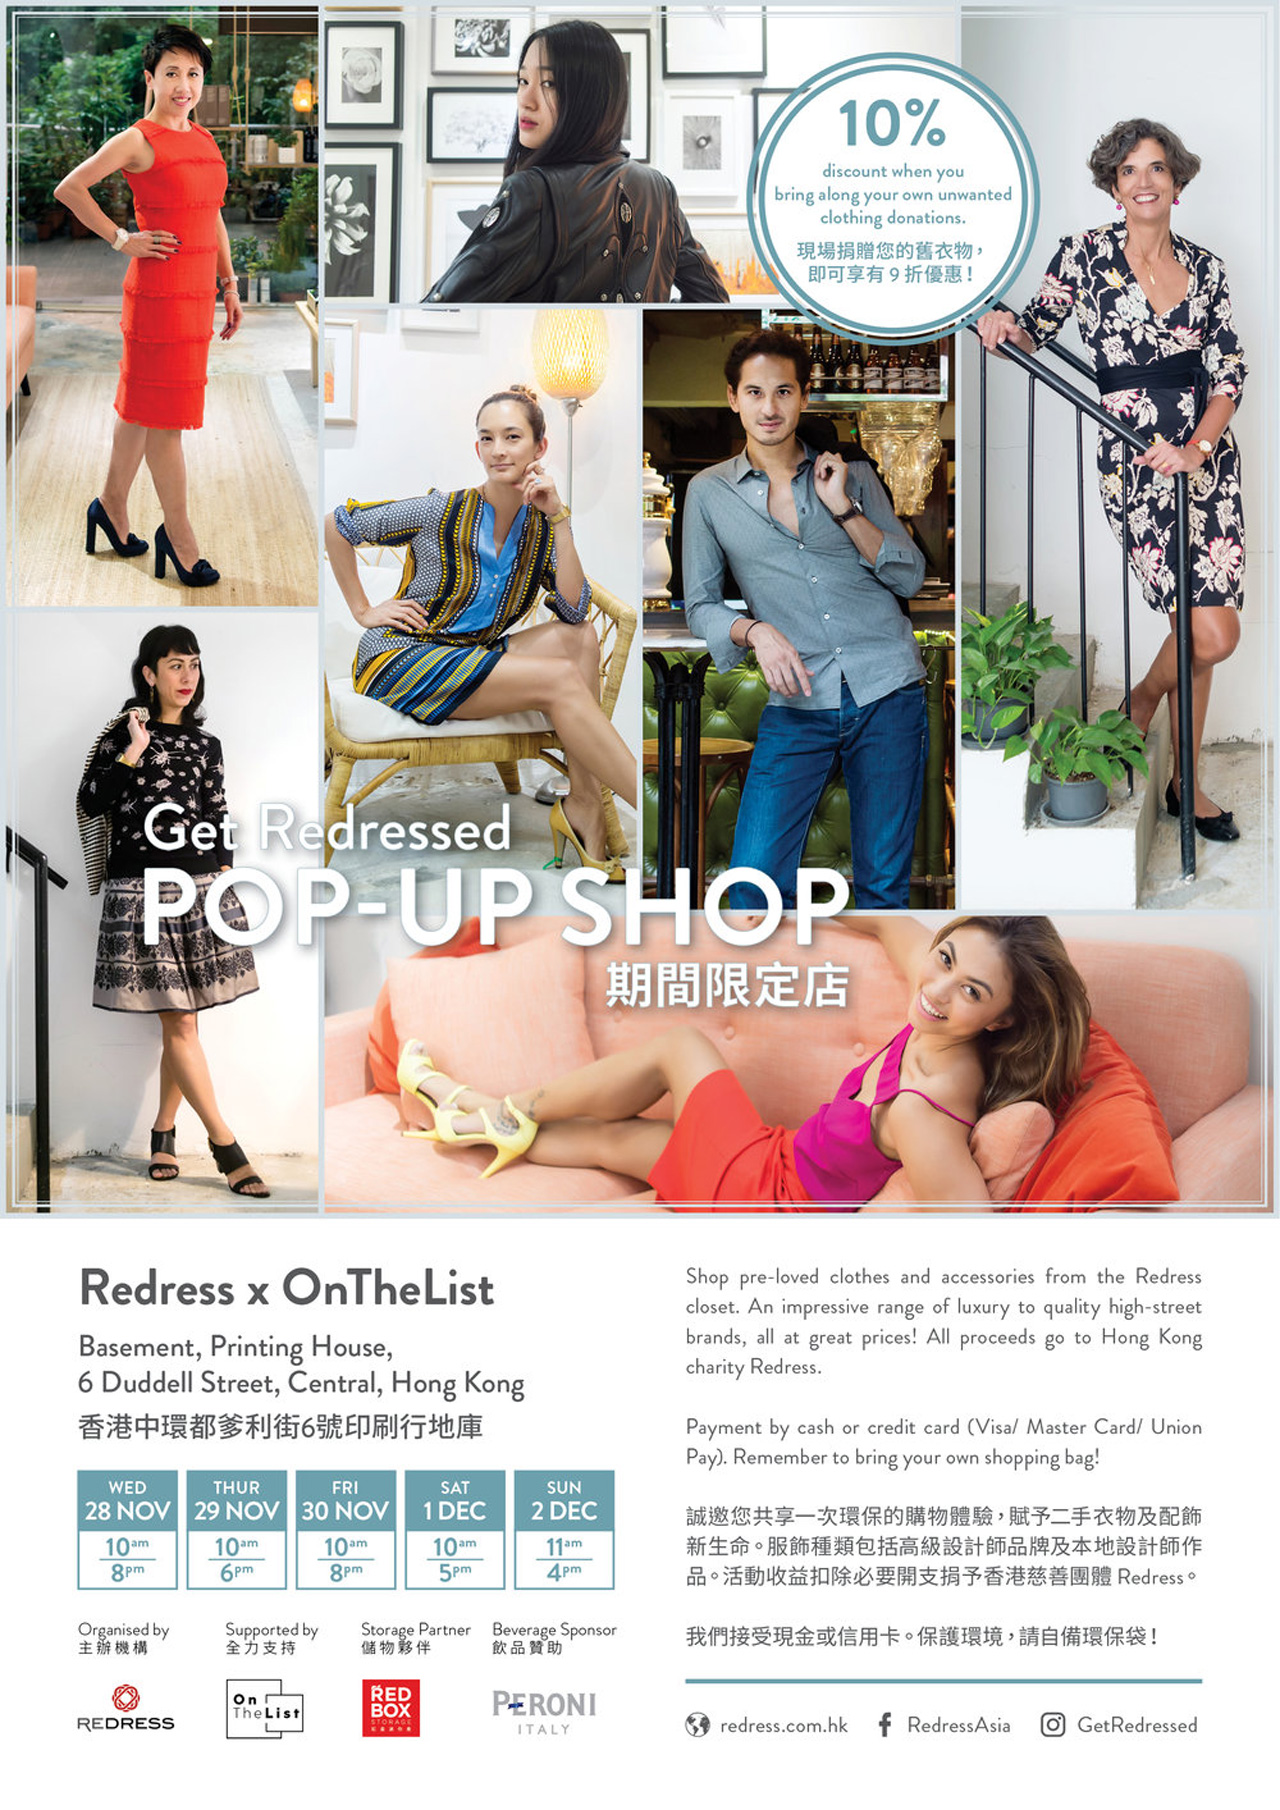 Get Redressed Pop-up Shop